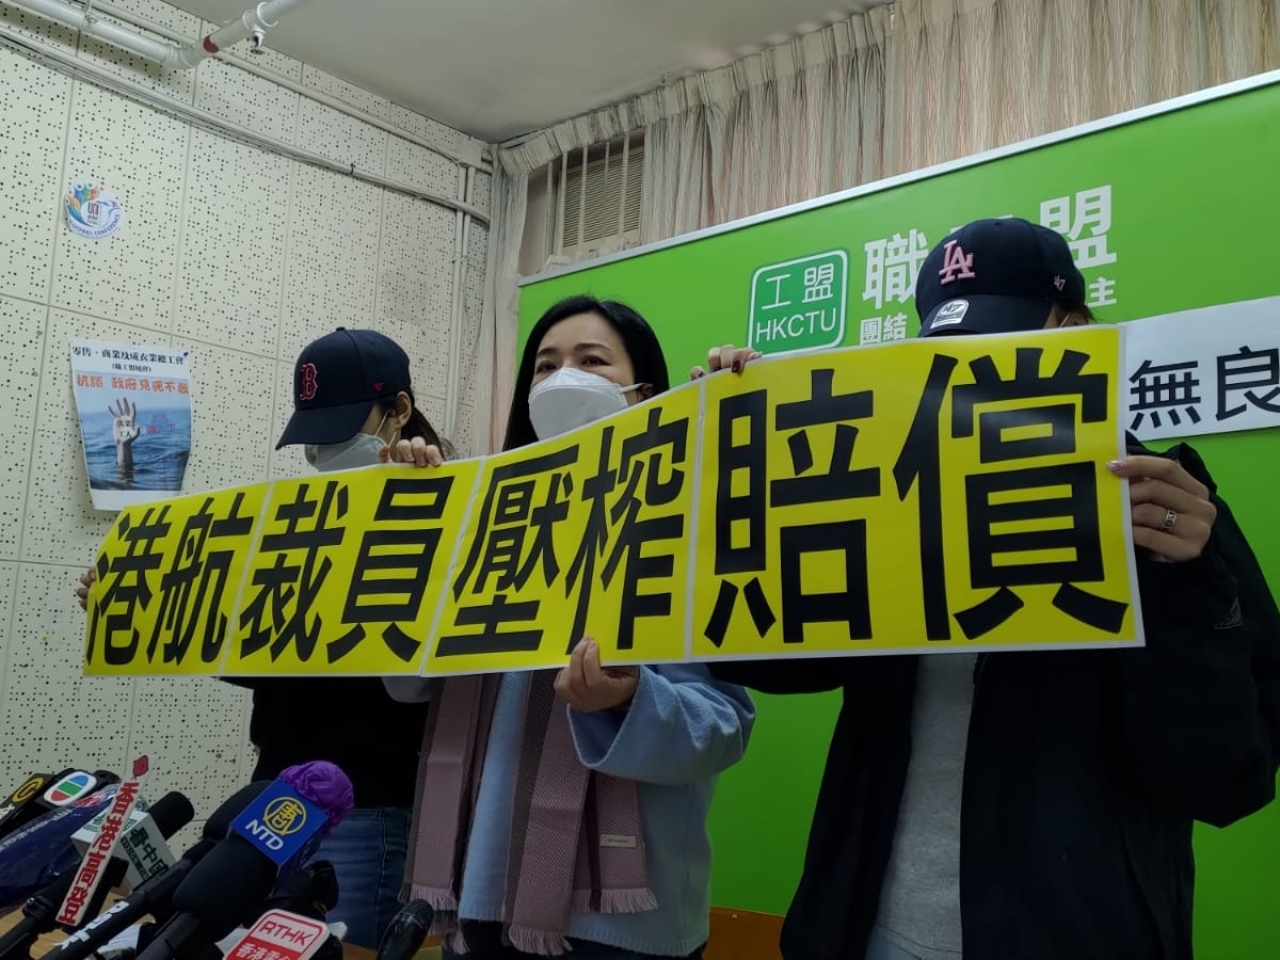 Sacked HK Airlines workers 'rep zero in compensation'